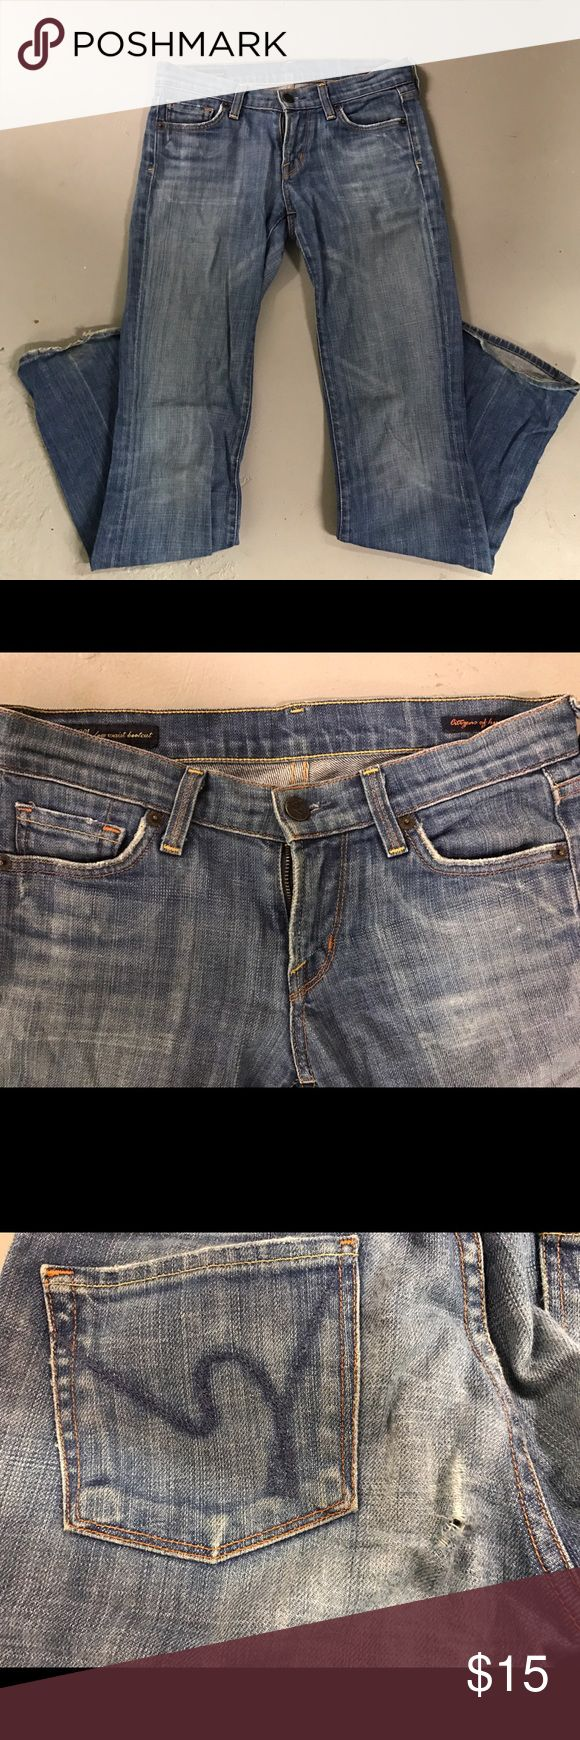 Citizens for Humanity jeans Citizens for Humanity jeans size 25. Style- Kelly #001 low waist boot cut stretch. Signs of wear on bottom of legs in back. Small hole near back pocket. Citizens of Humanity Jeans Boot Cut